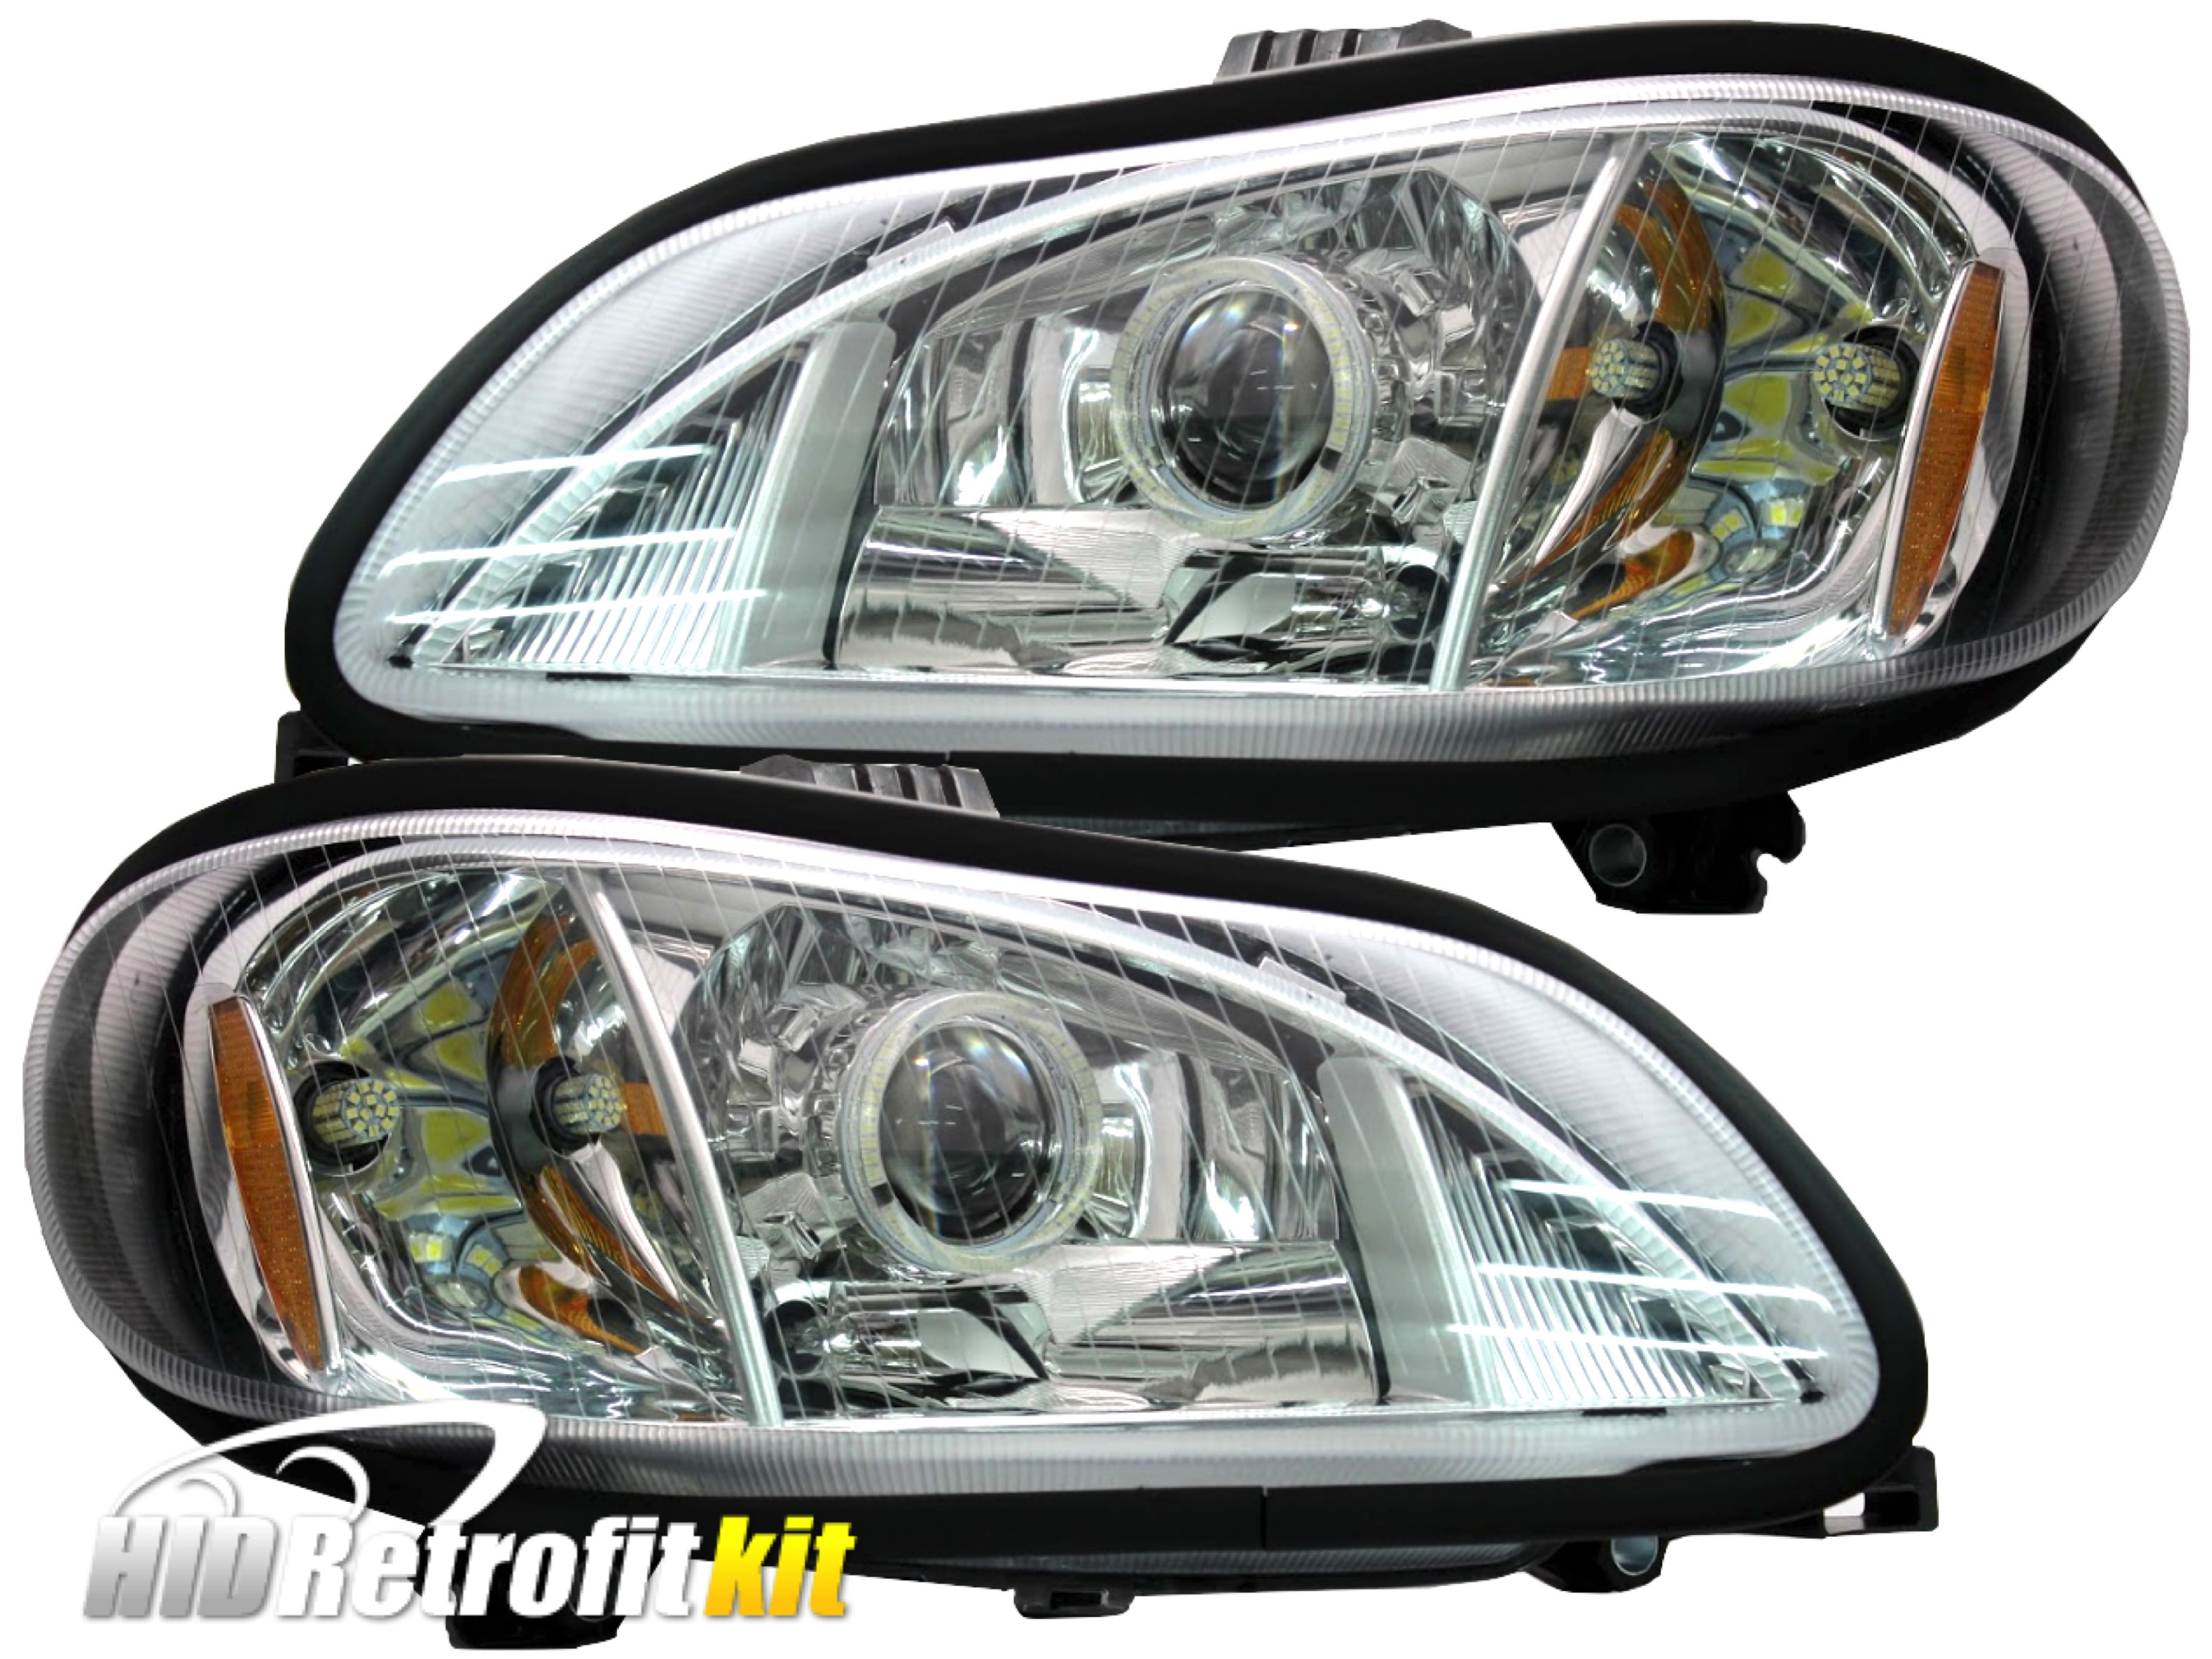 Freightliner Fld Projector Headlights : Freightliner m business class projector led